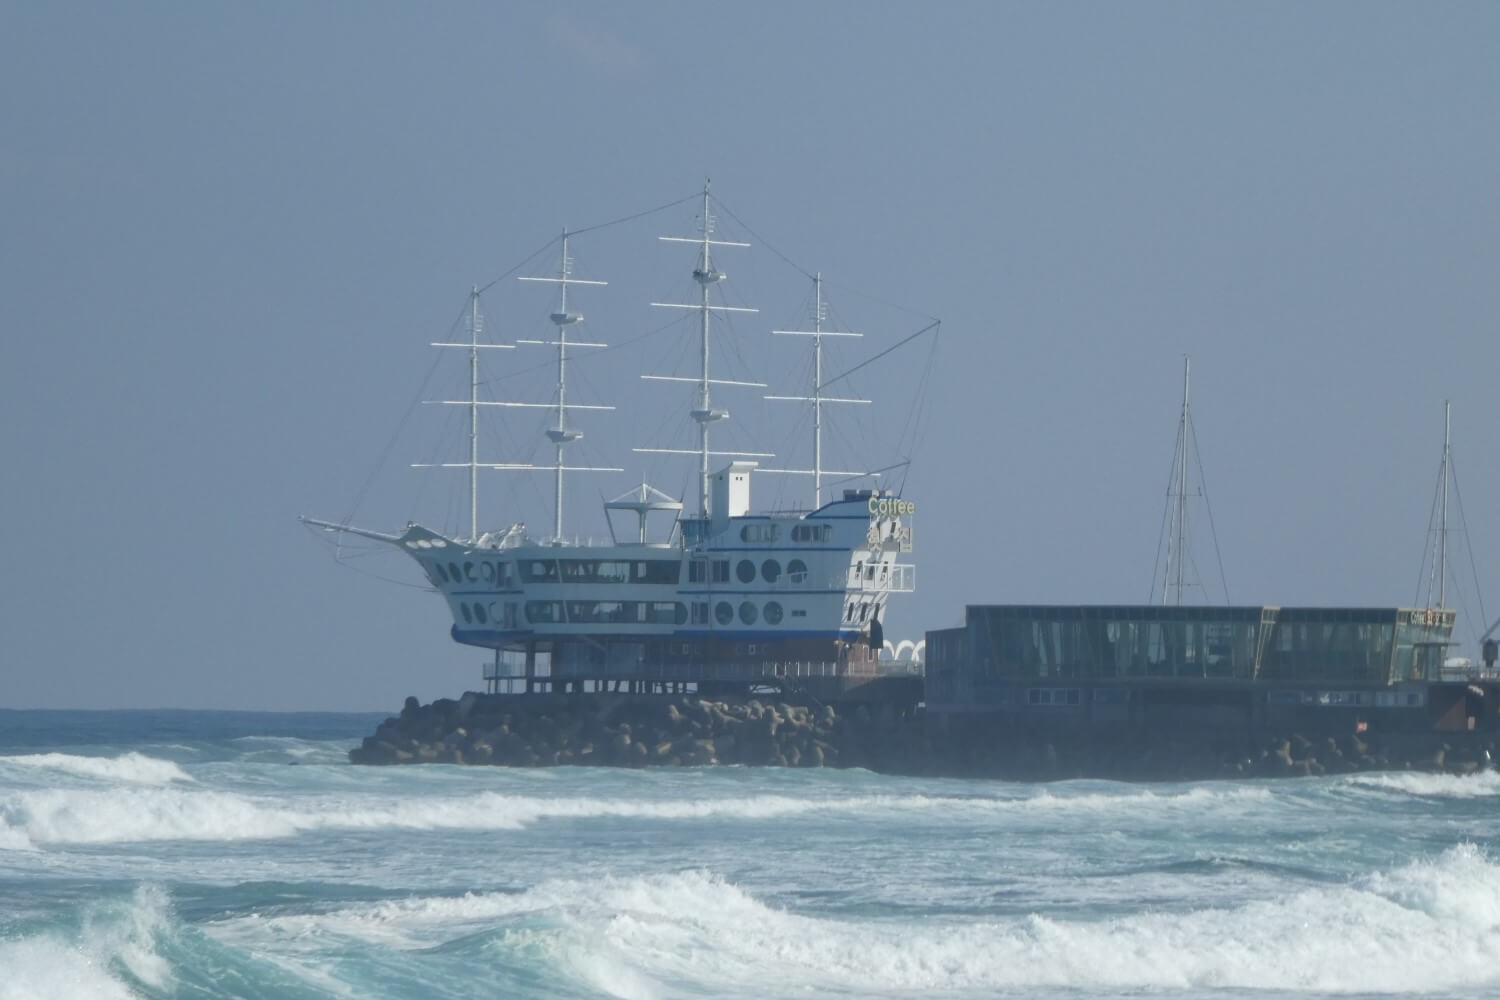 The little Cruise ship in South Korea